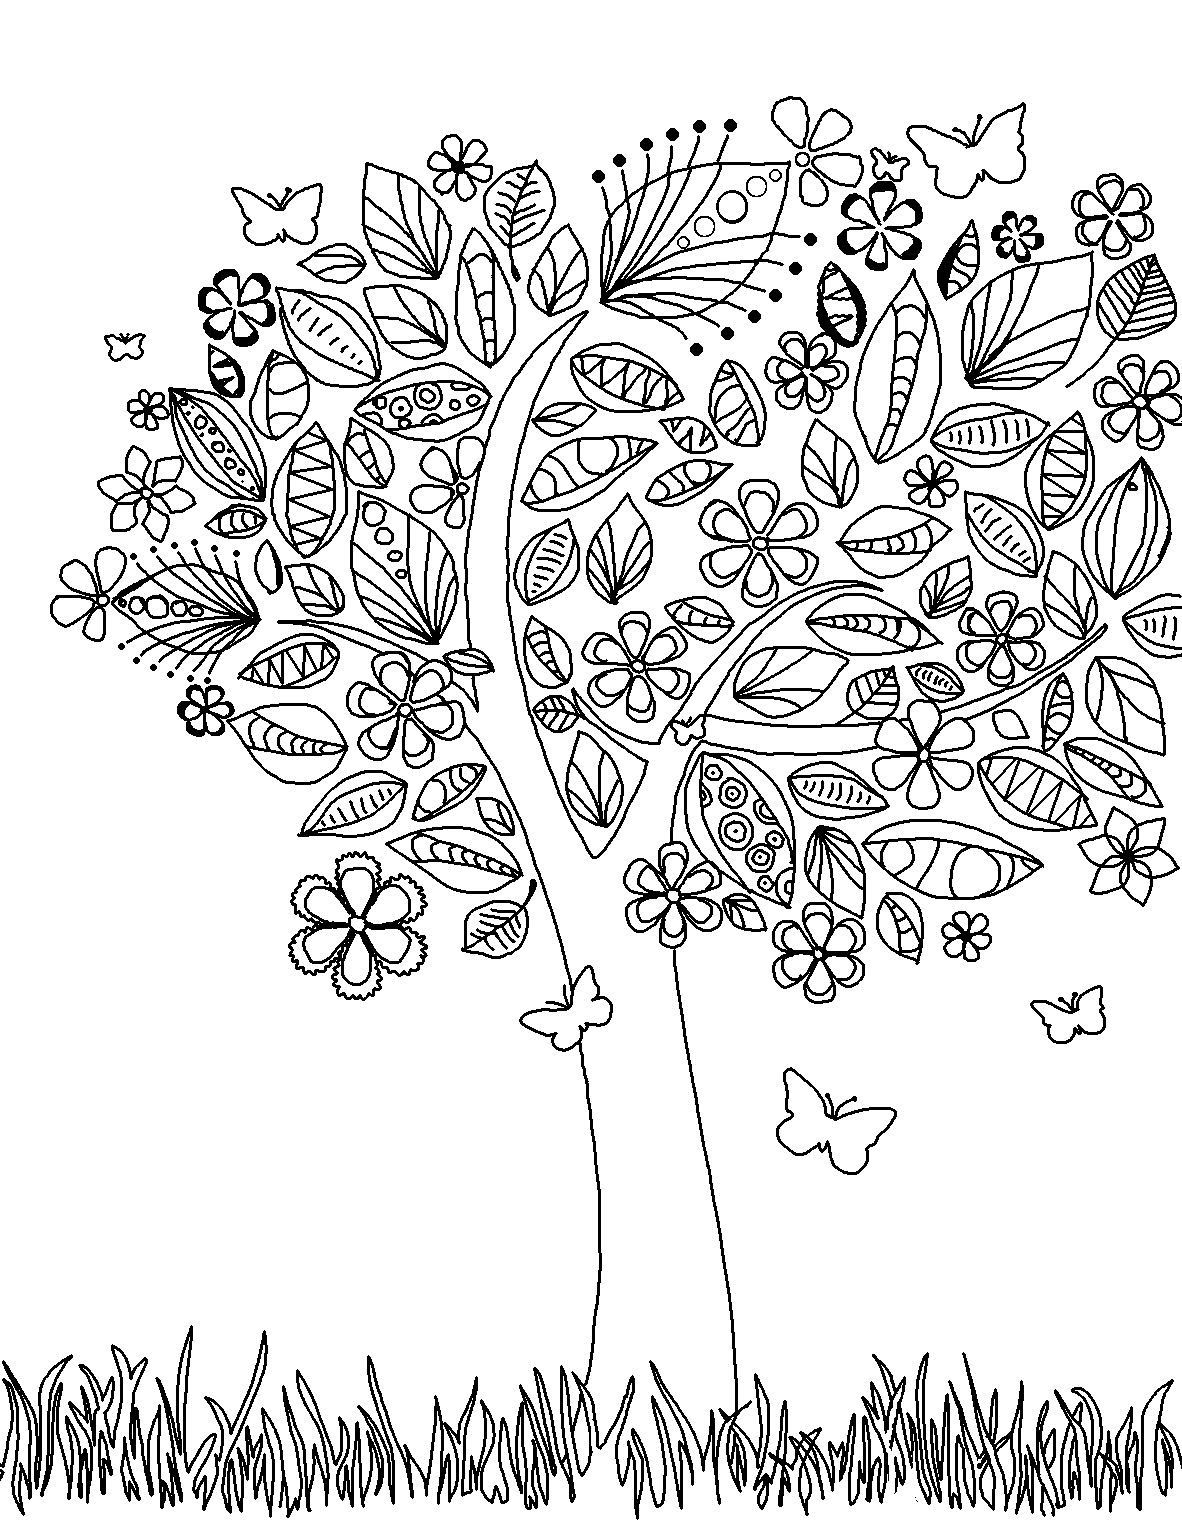 Free printable coloring pages with words -  Elephant Pages Tree Coloring Page Free Adult Coloring Pages